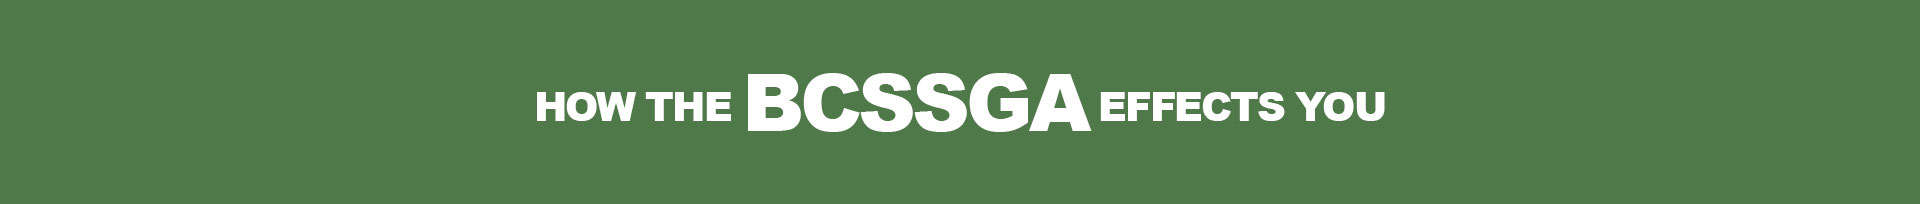 How the BCSSGA affects you